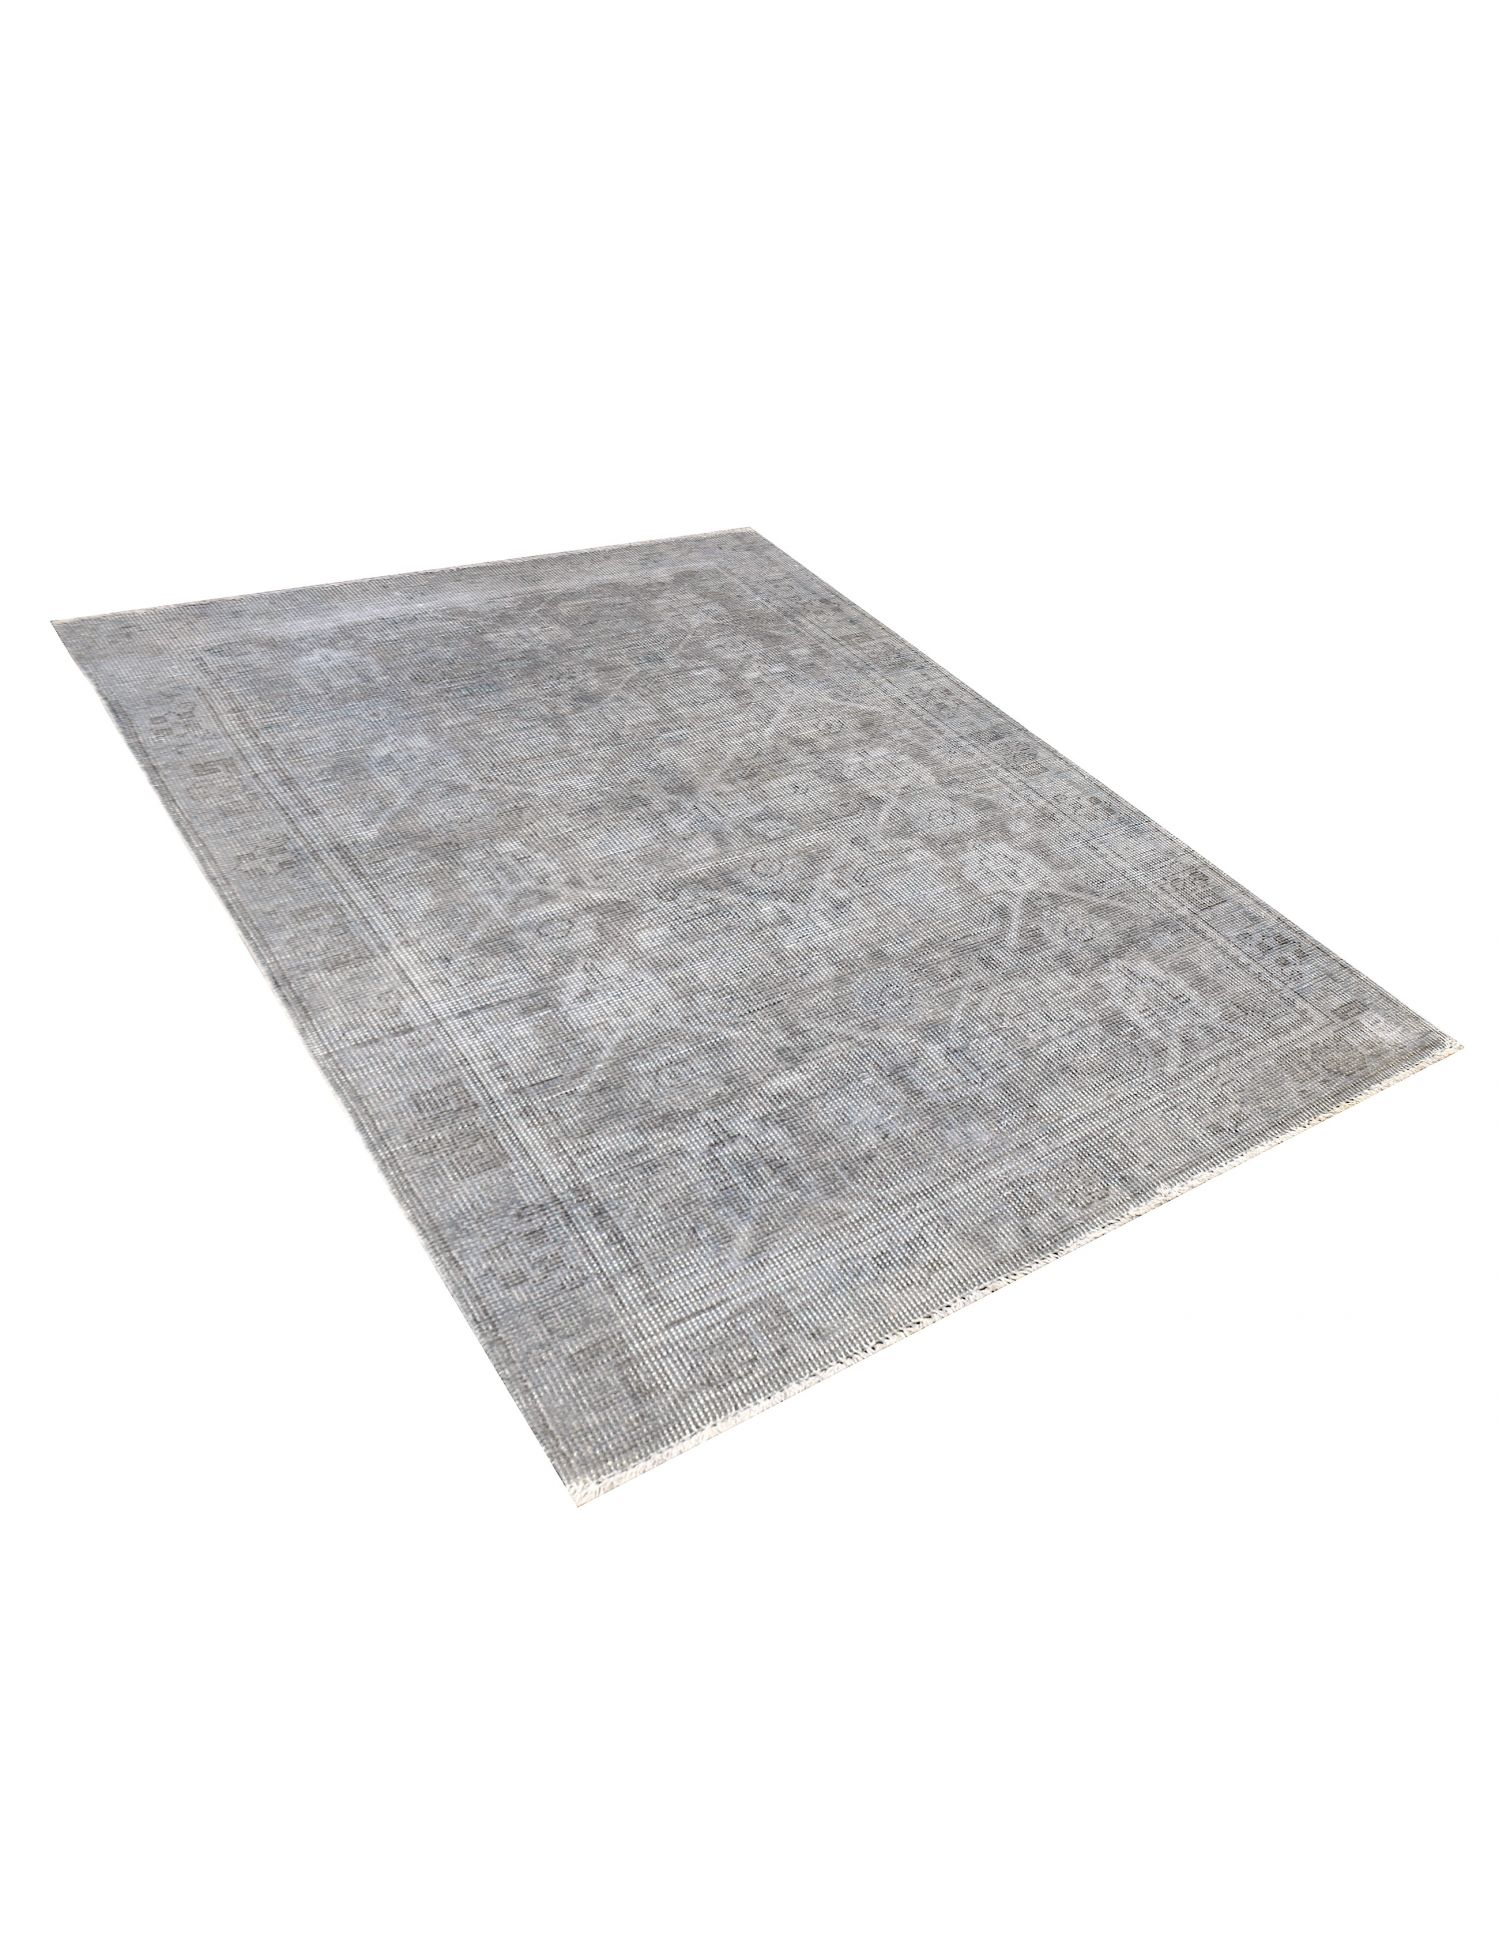 Vintage Carpet  grey <br/>146 x 93 cm